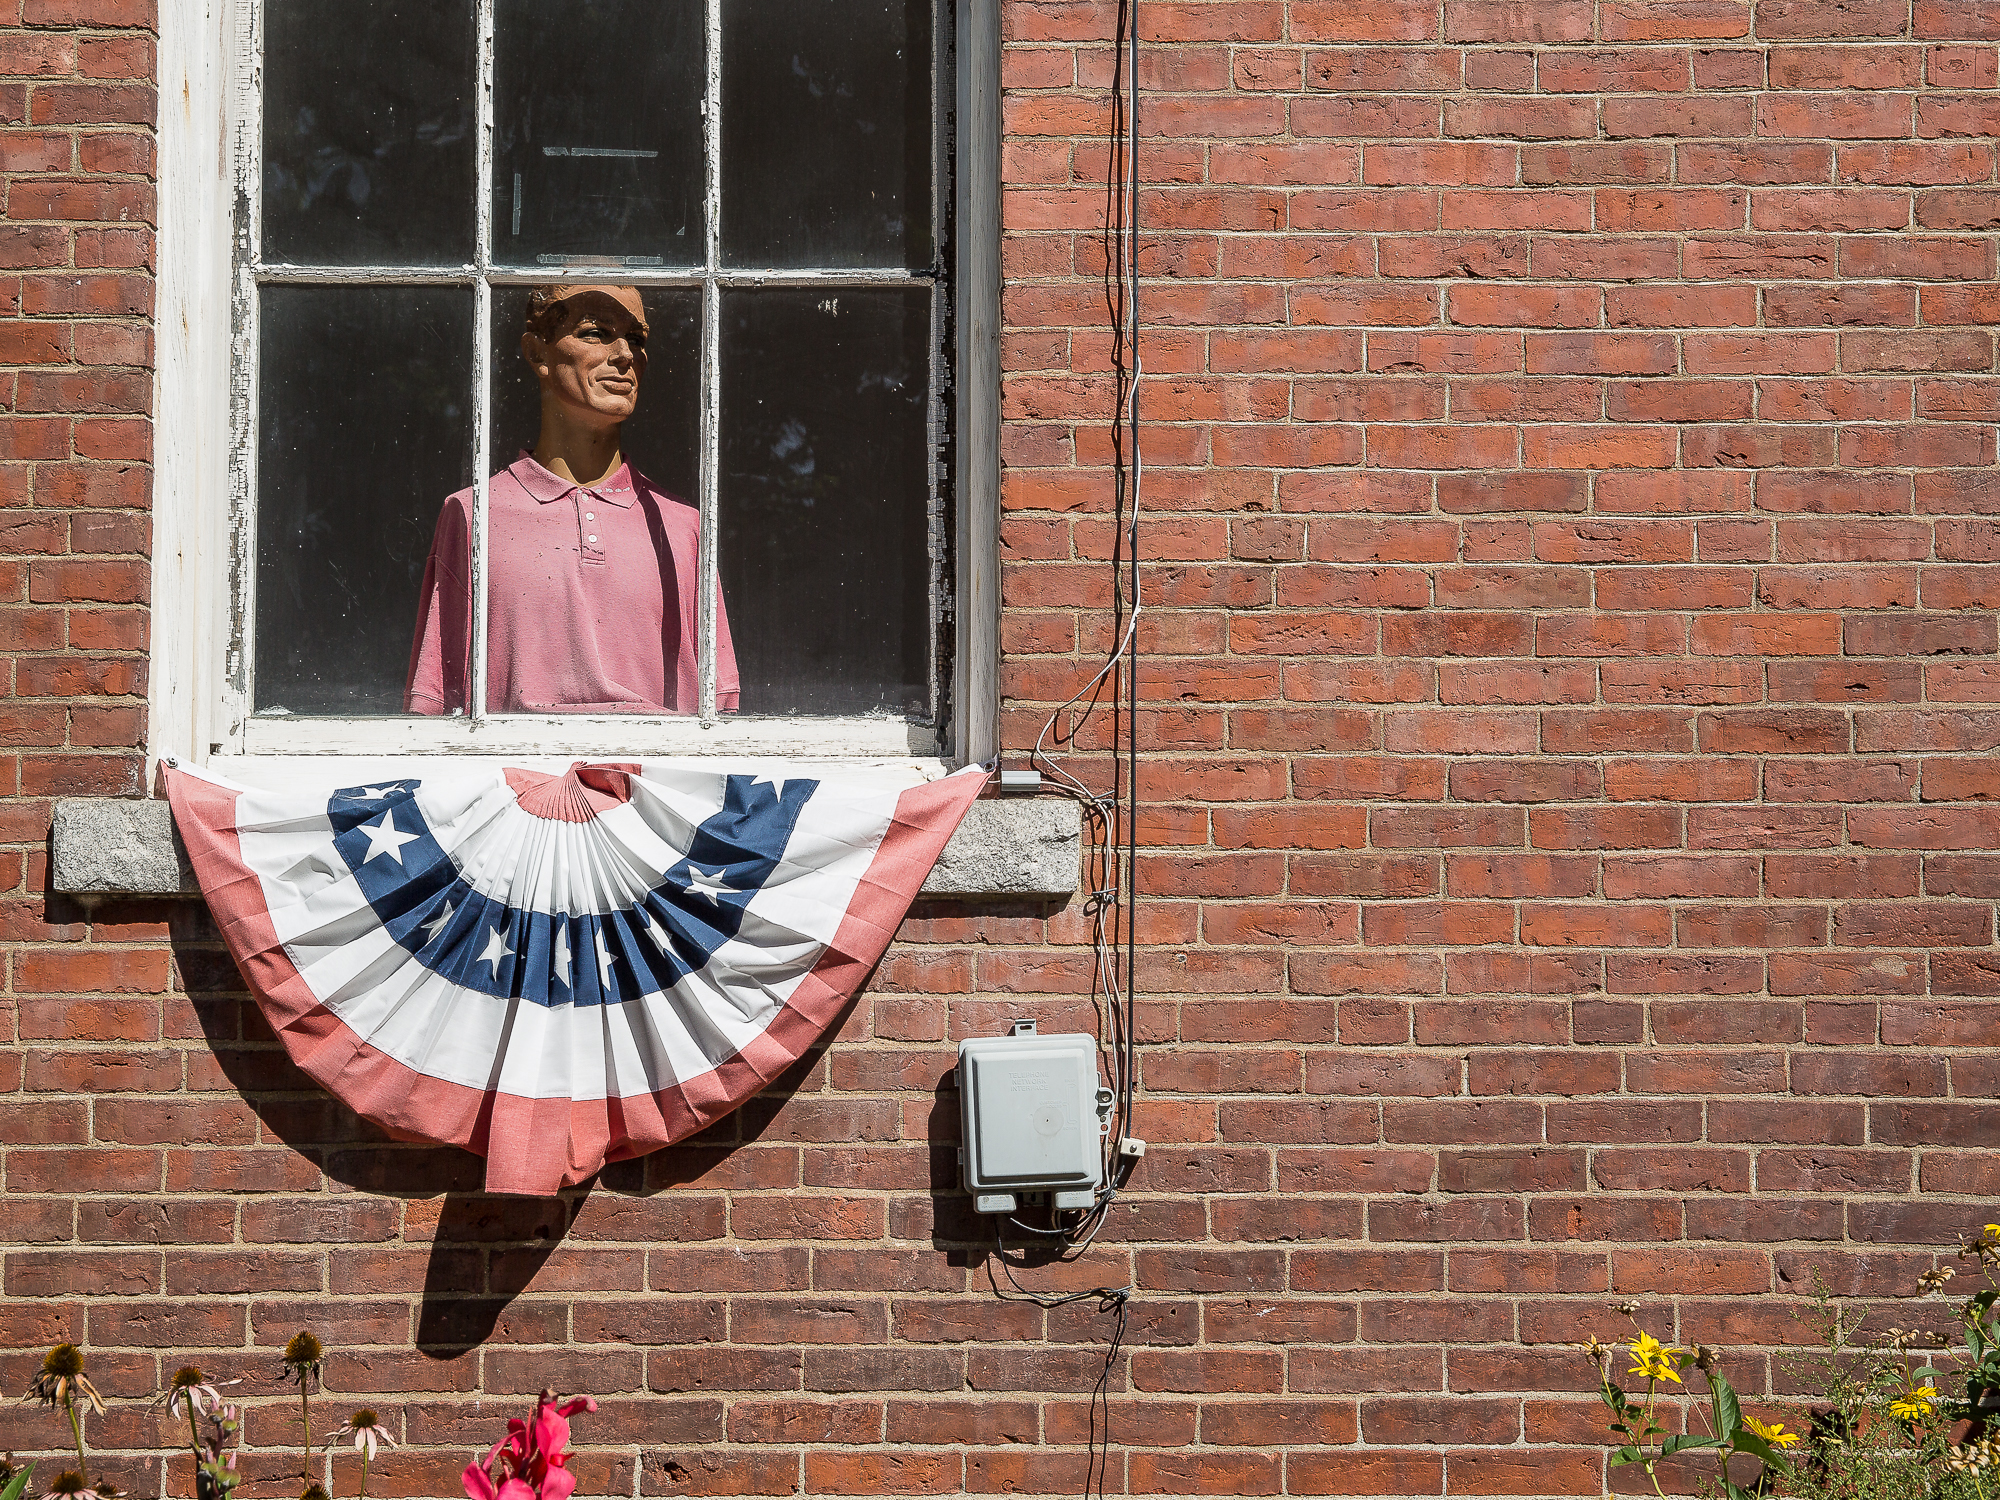 Dummy in Chester, Vermont stares out of a window